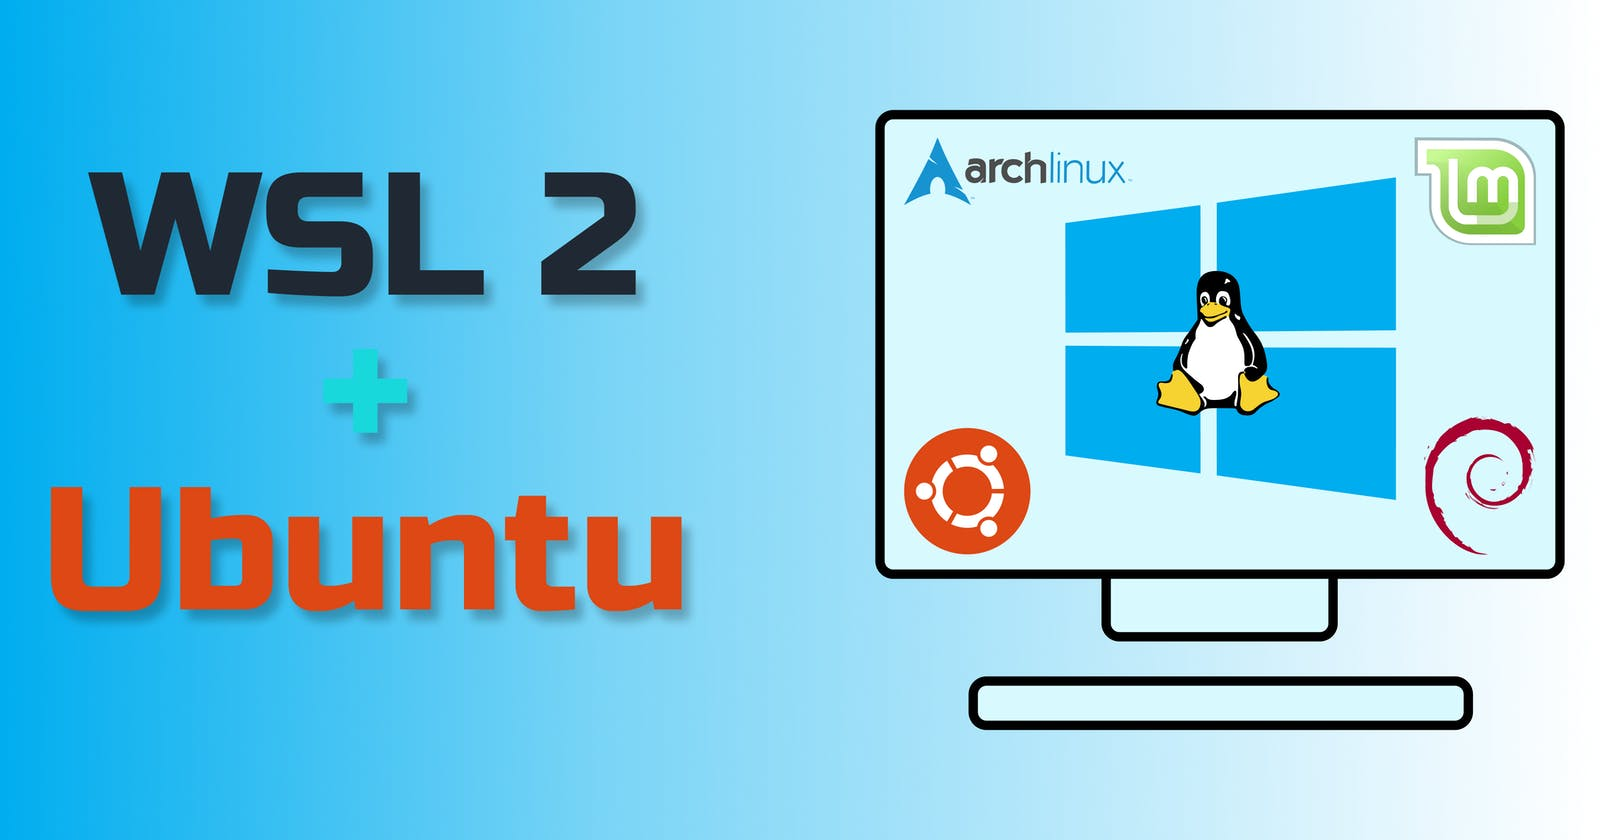 Ditching Linux for WSL 2